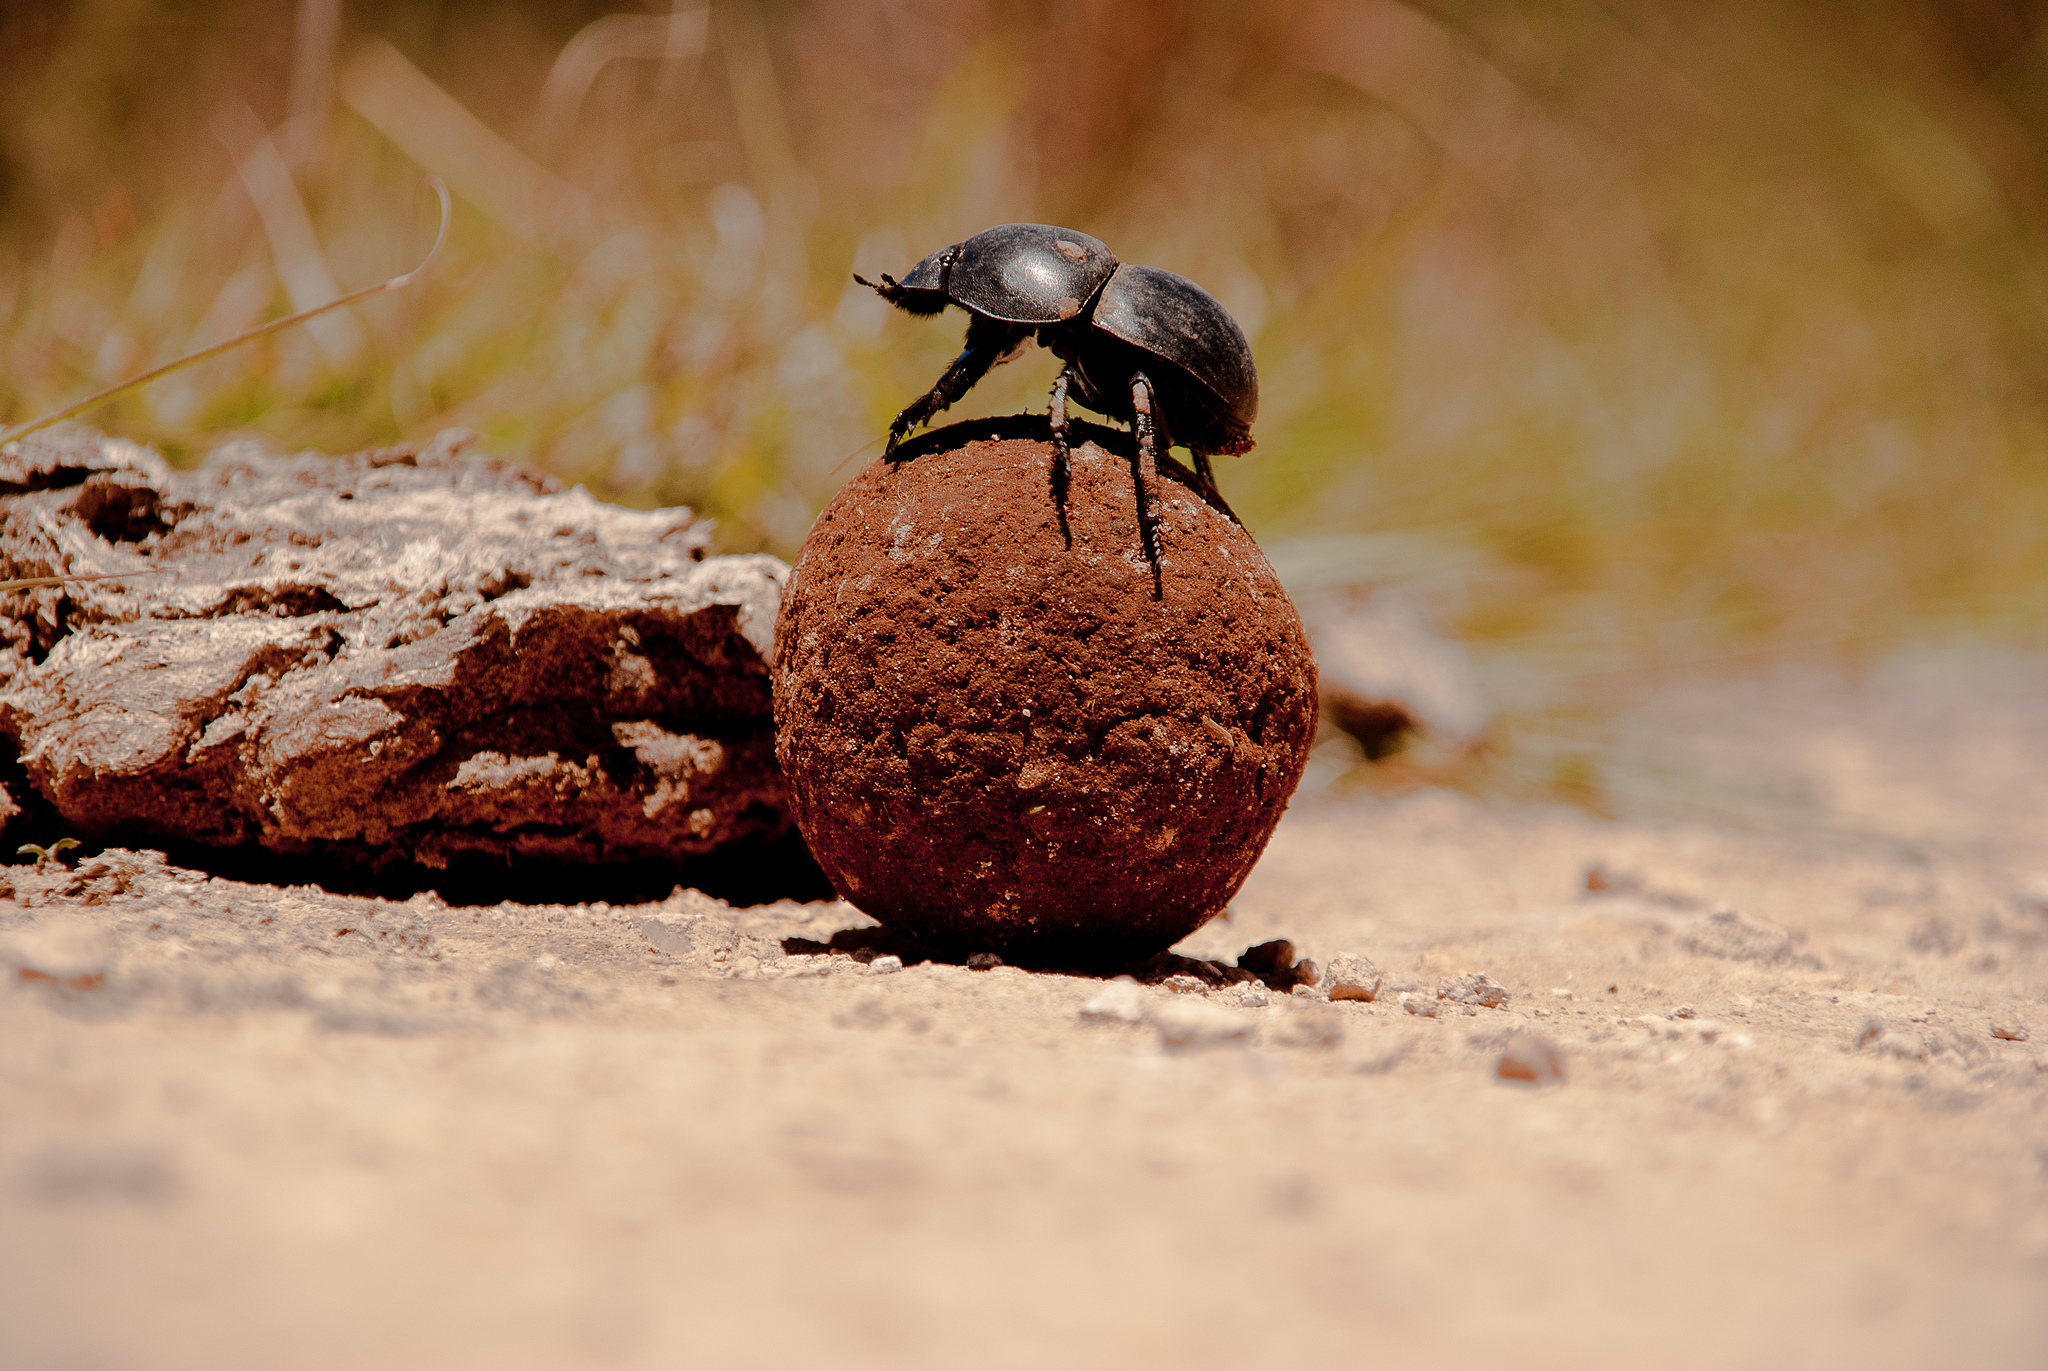 dung beetle photo by Andi Gentsch on Flickr